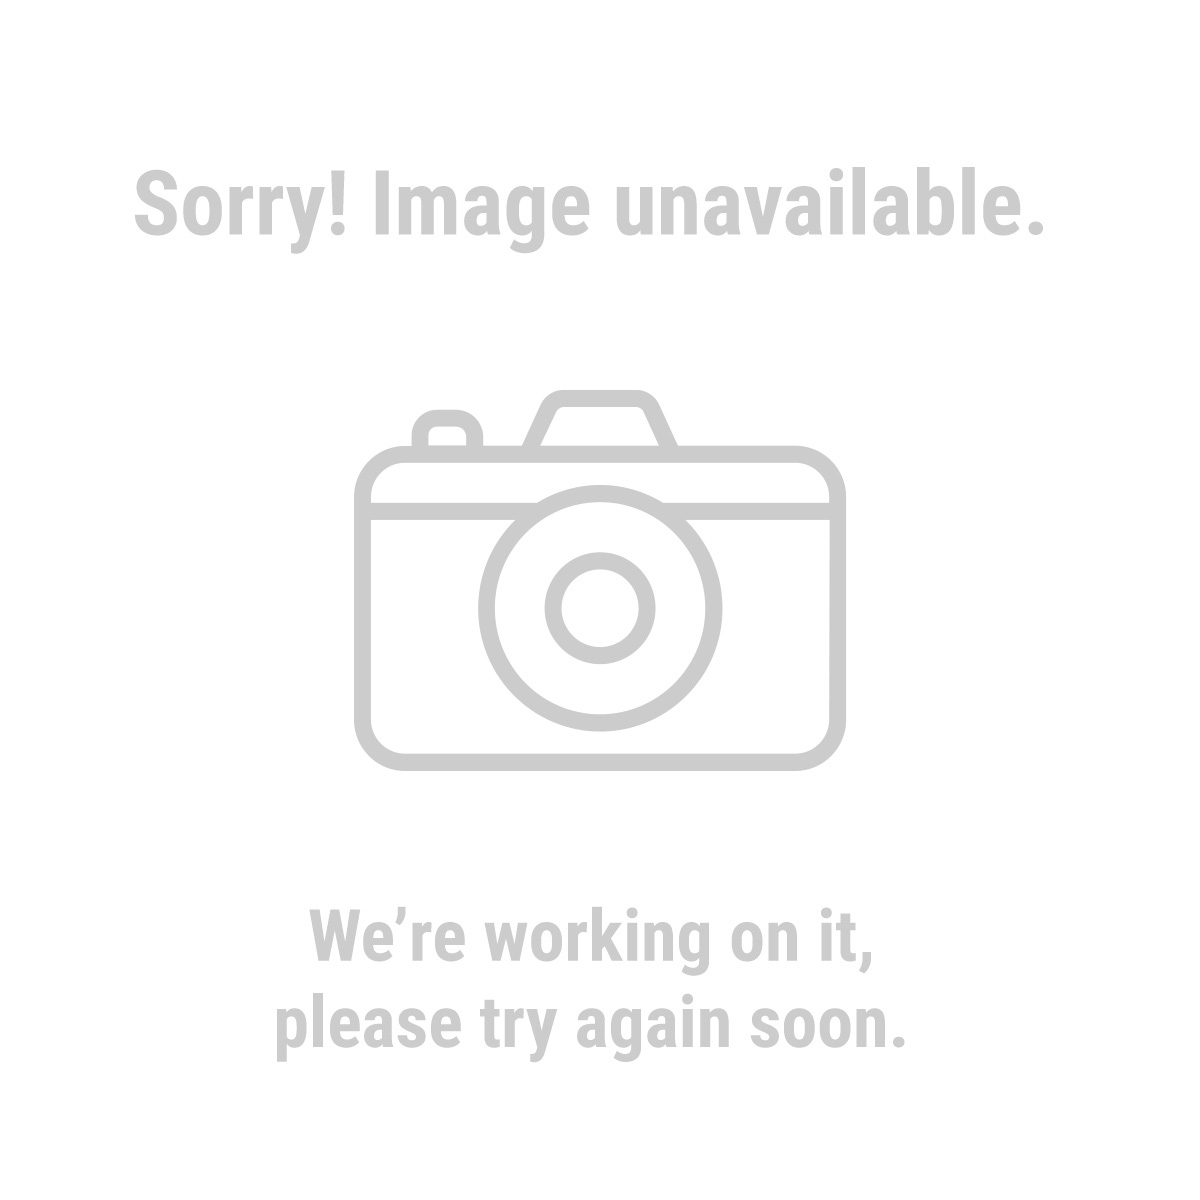 Western Safety 96633 Safety Glasses with Tinted Lenses